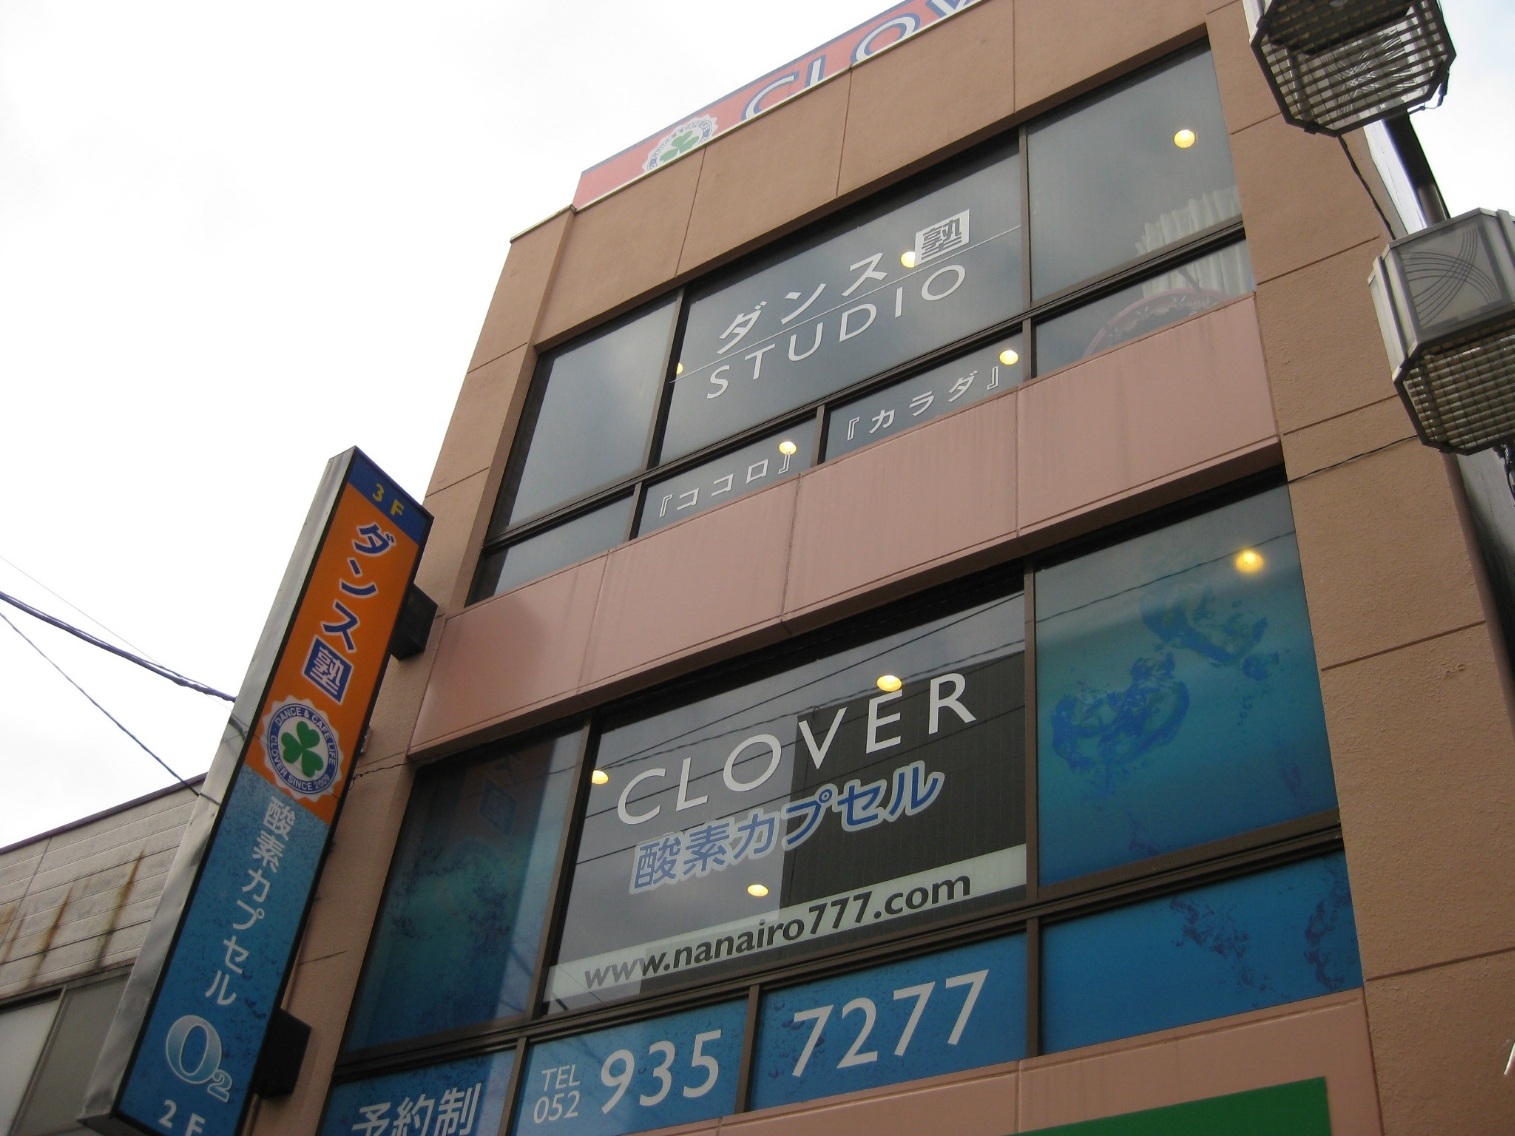 CLOVER beautysalon